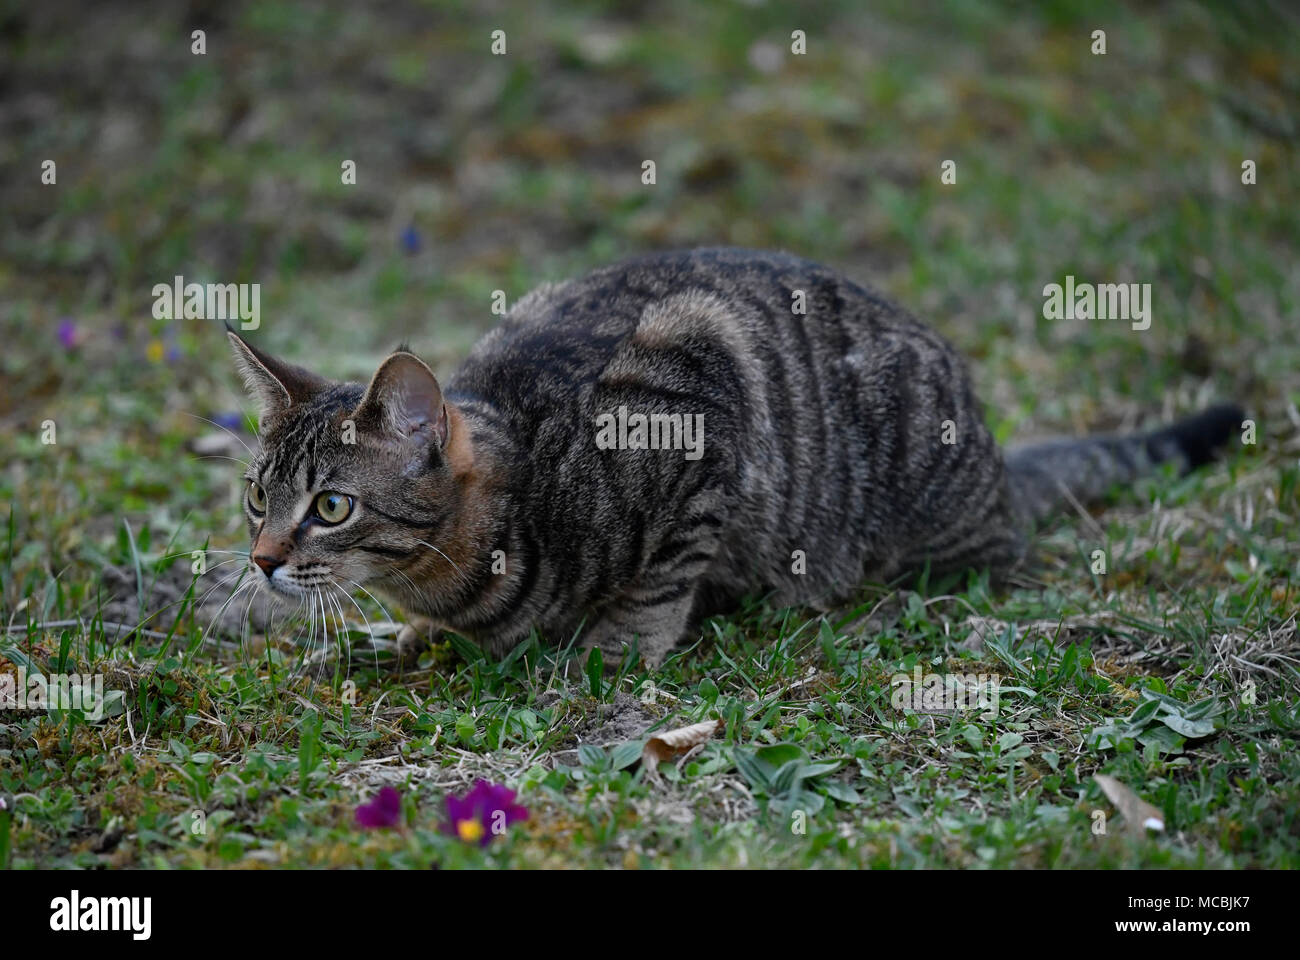 Domestic cat , tabby, on lurking, observing, kitten 6 months, Germany - Stock Image